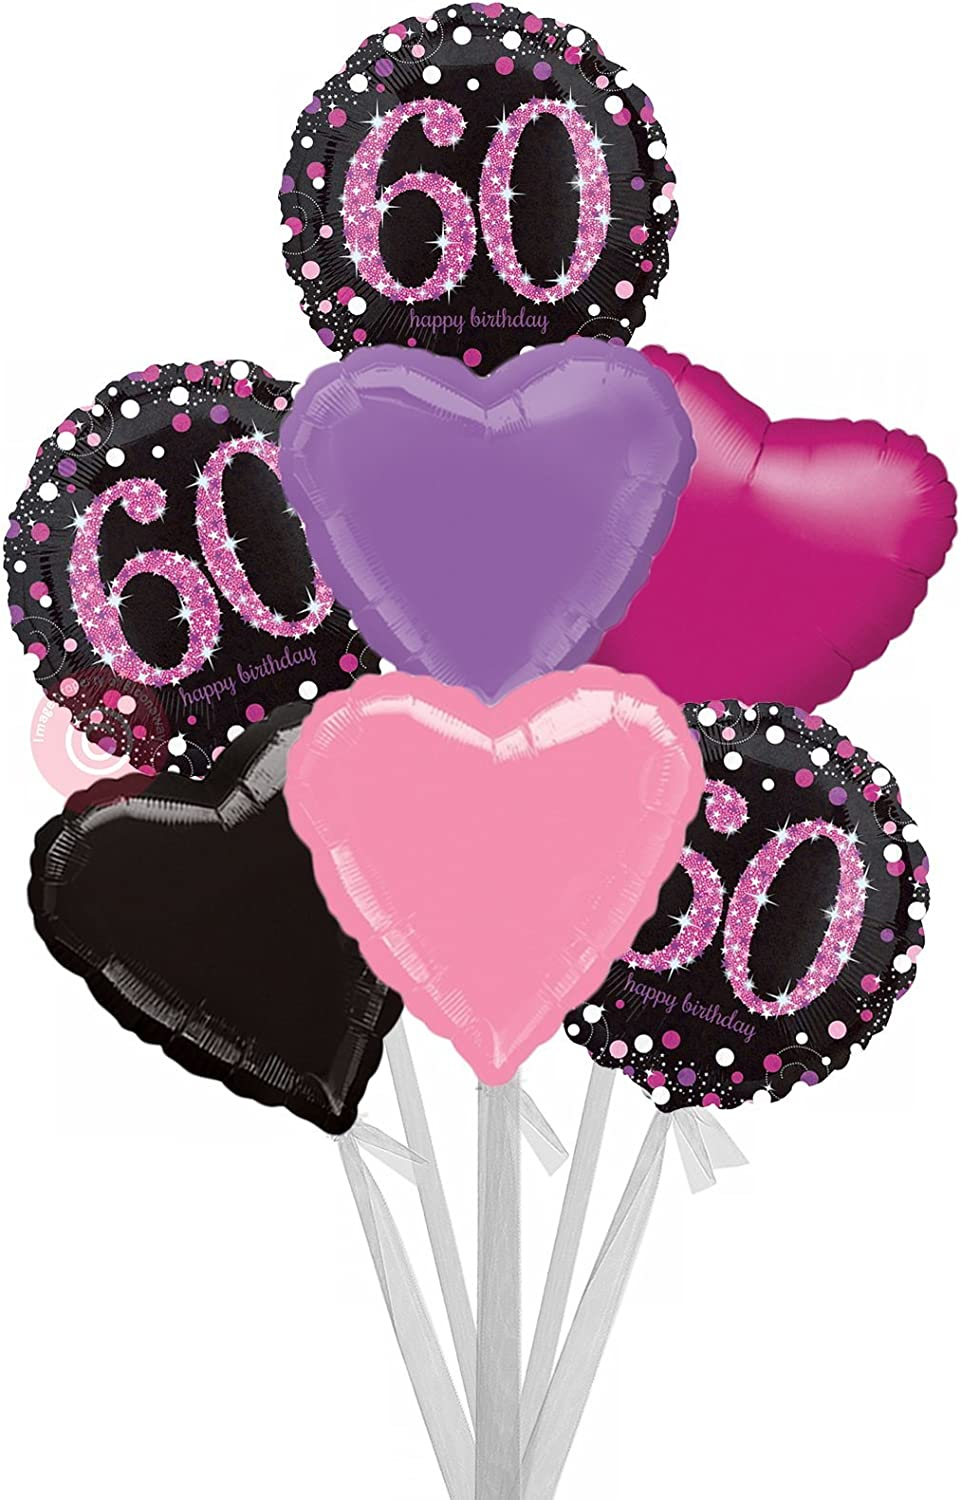 Num 60 Pink Celebration 60 Happy Birthday  Inflated Birthday Helium Balloon Delivered in a Box  Bigger Bouquet  7 Balloons  Bloonaway